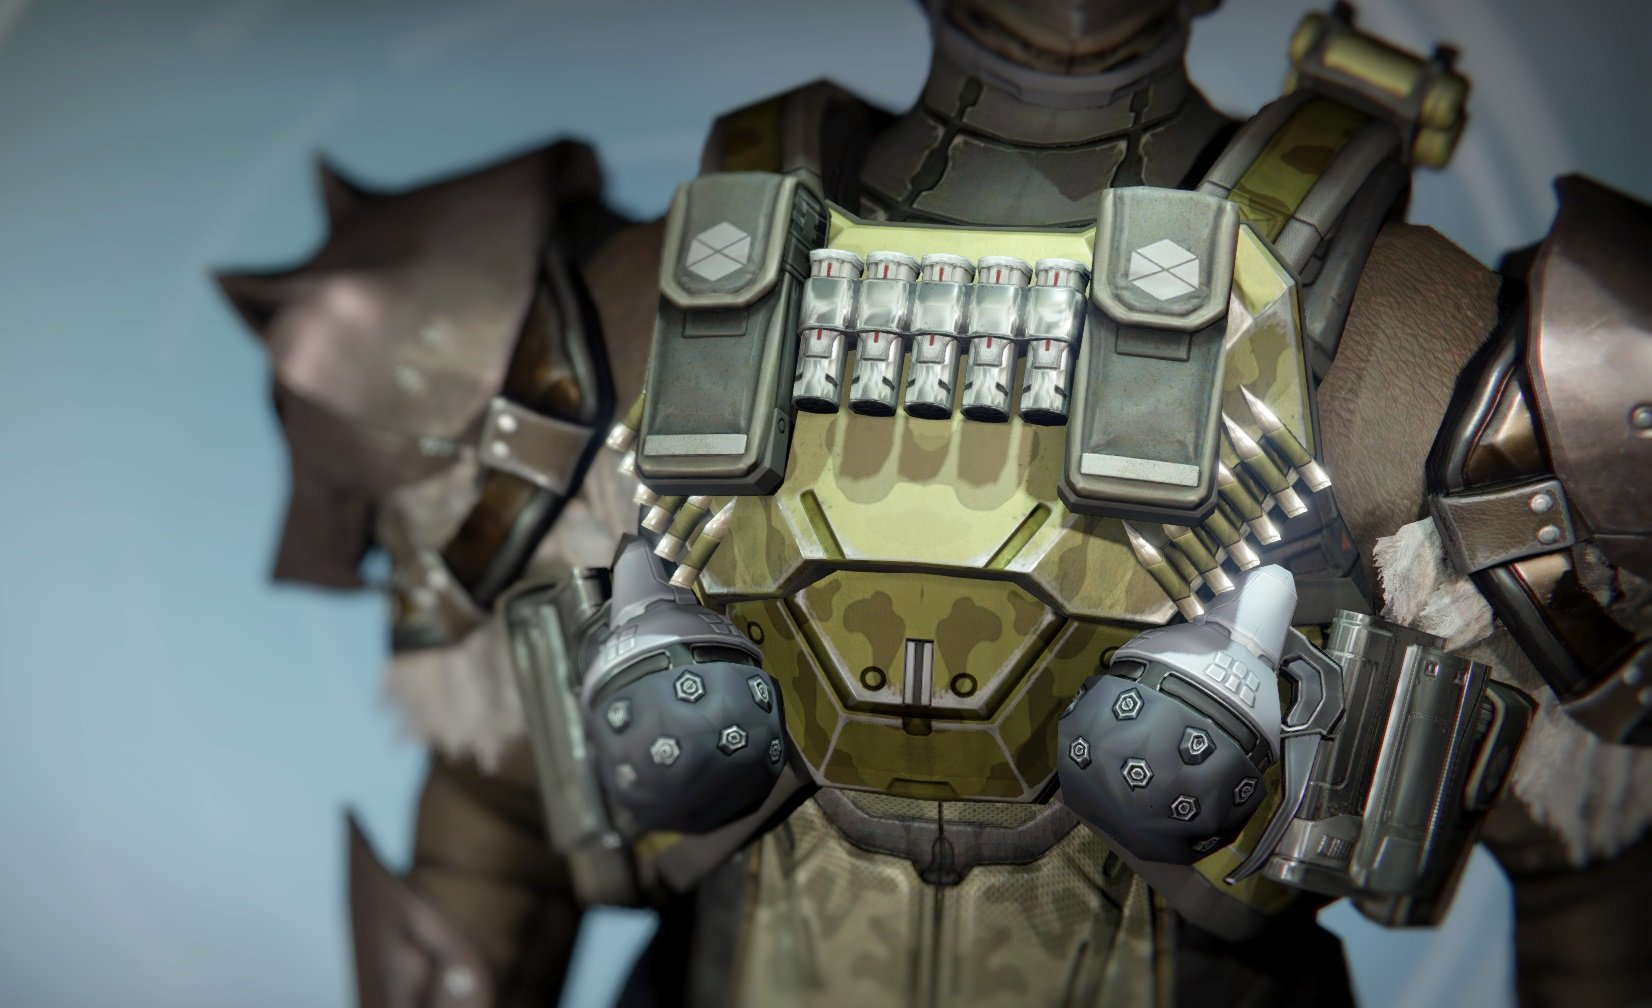 What Xur is selling in Destiny 2 - April 17, 2020